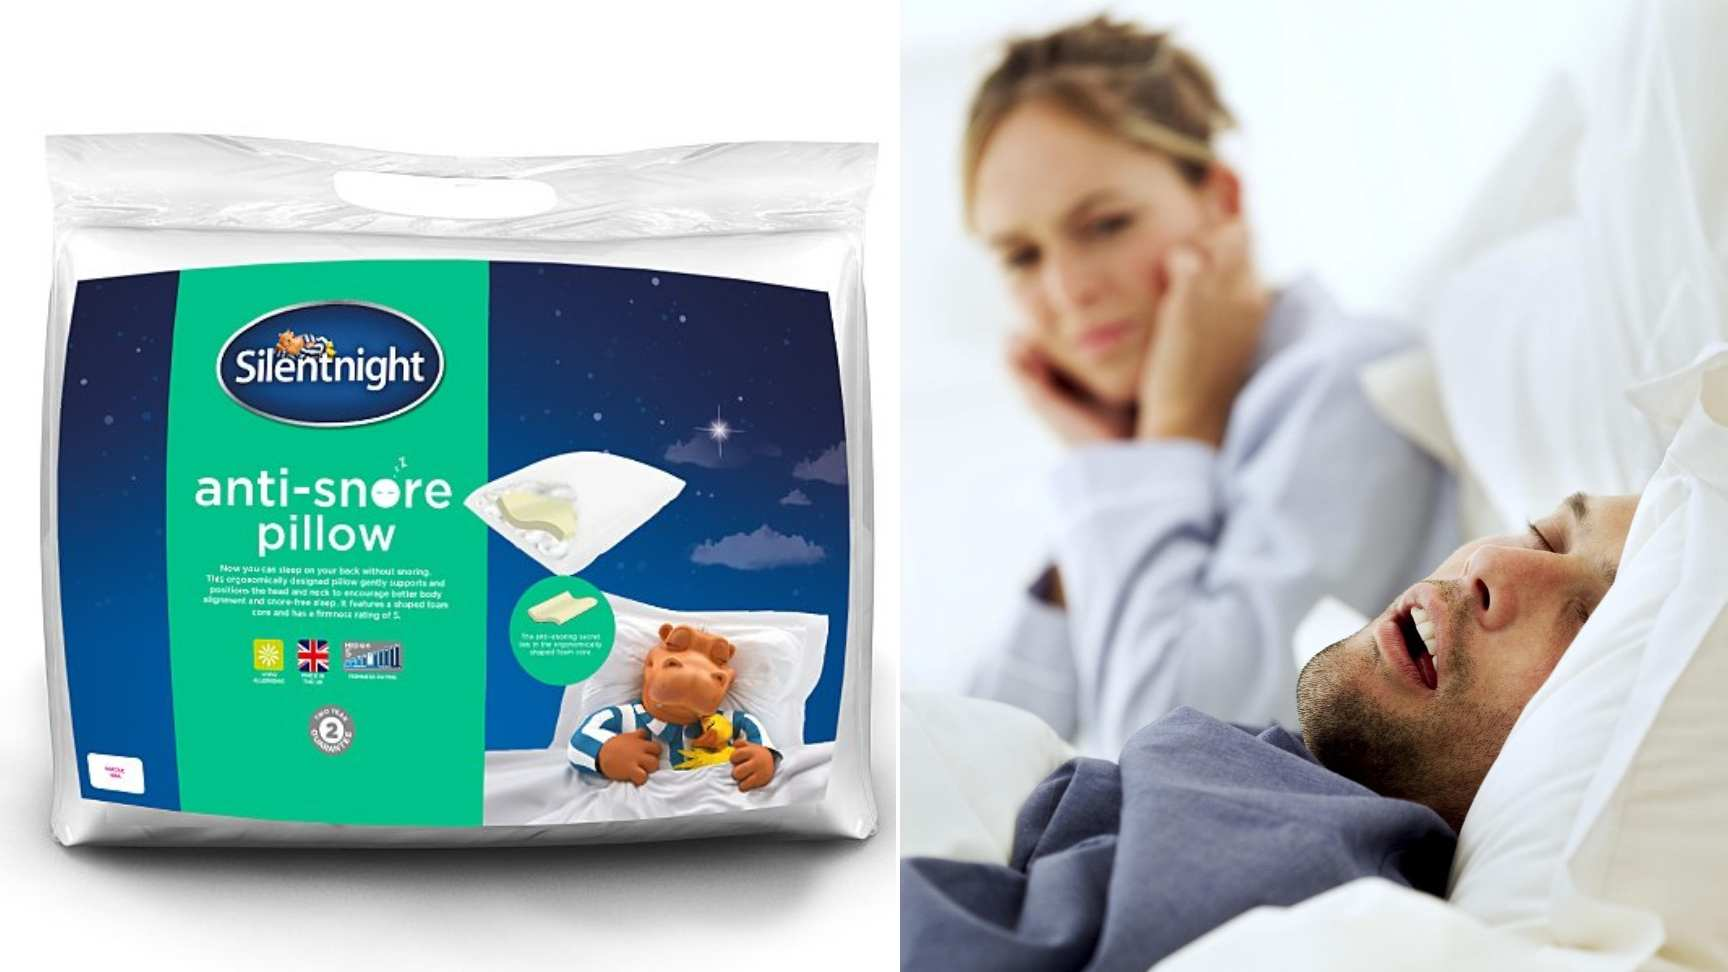 The Silentnight anti-snore pillow that is being sold for £12